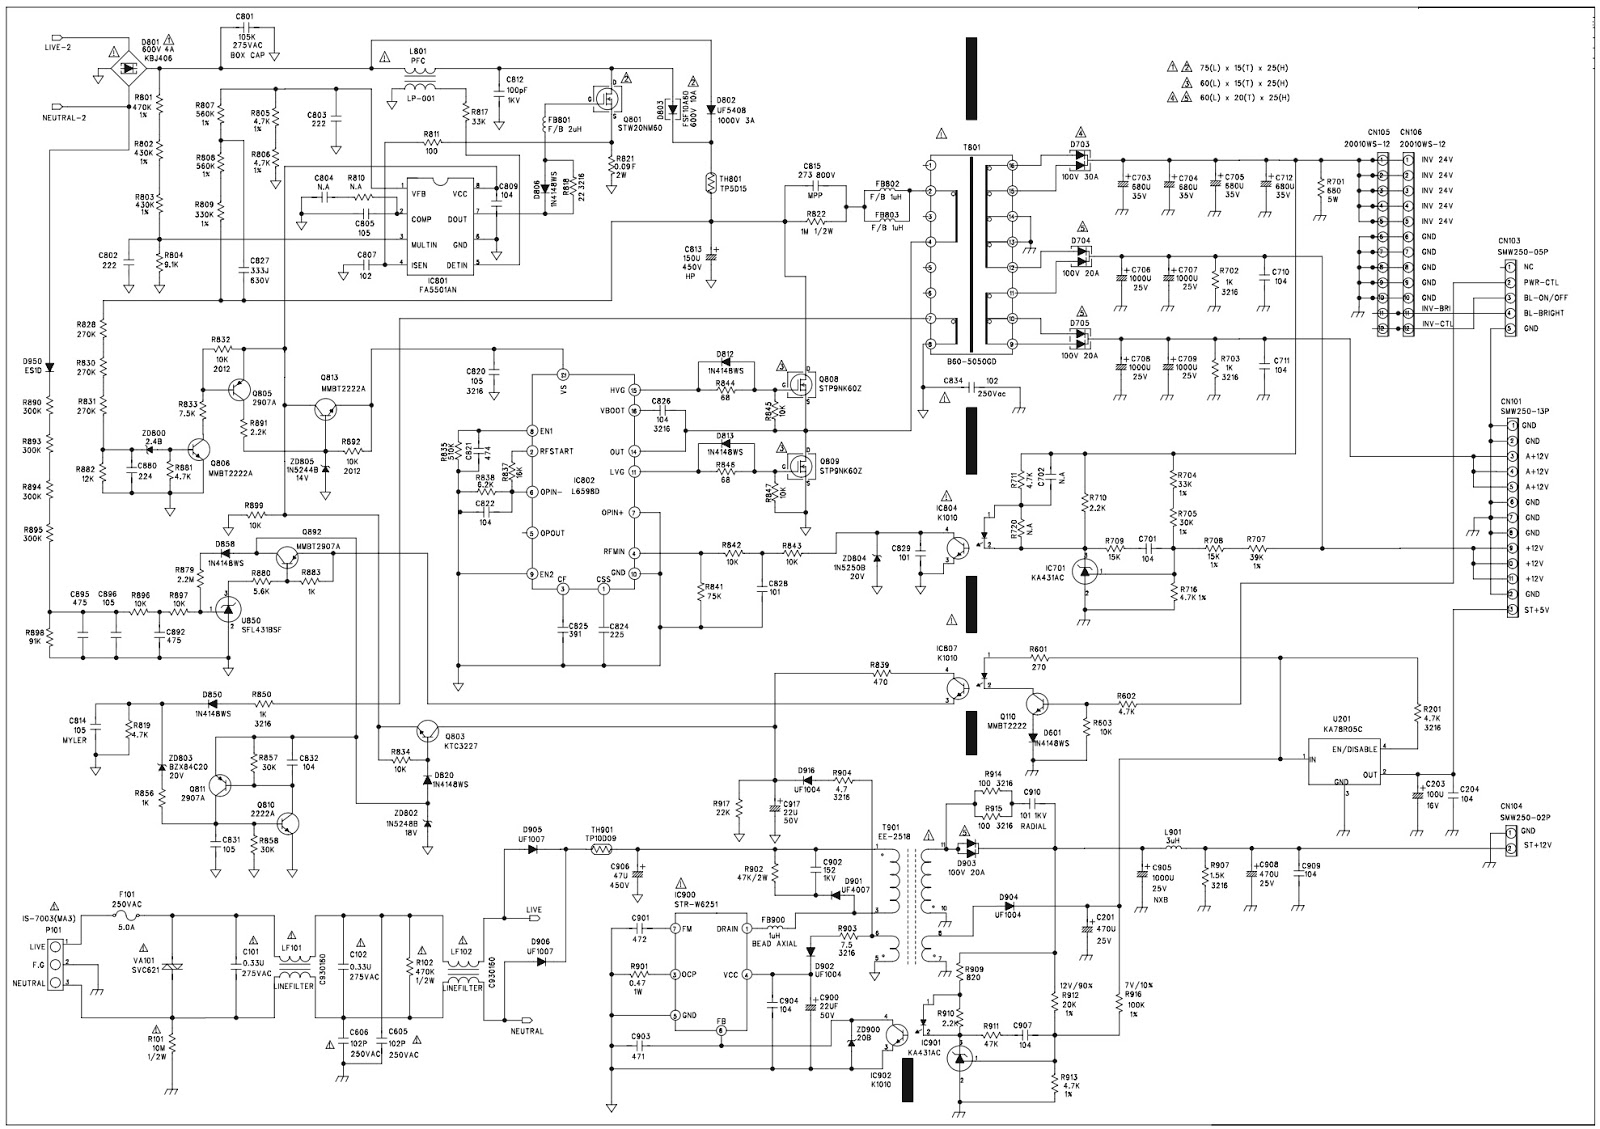 medium resolution of lcd tv schematic diagrams wiring diagram toolbox lg television schematic diagram lg 26h1dc1 lcd tv smps